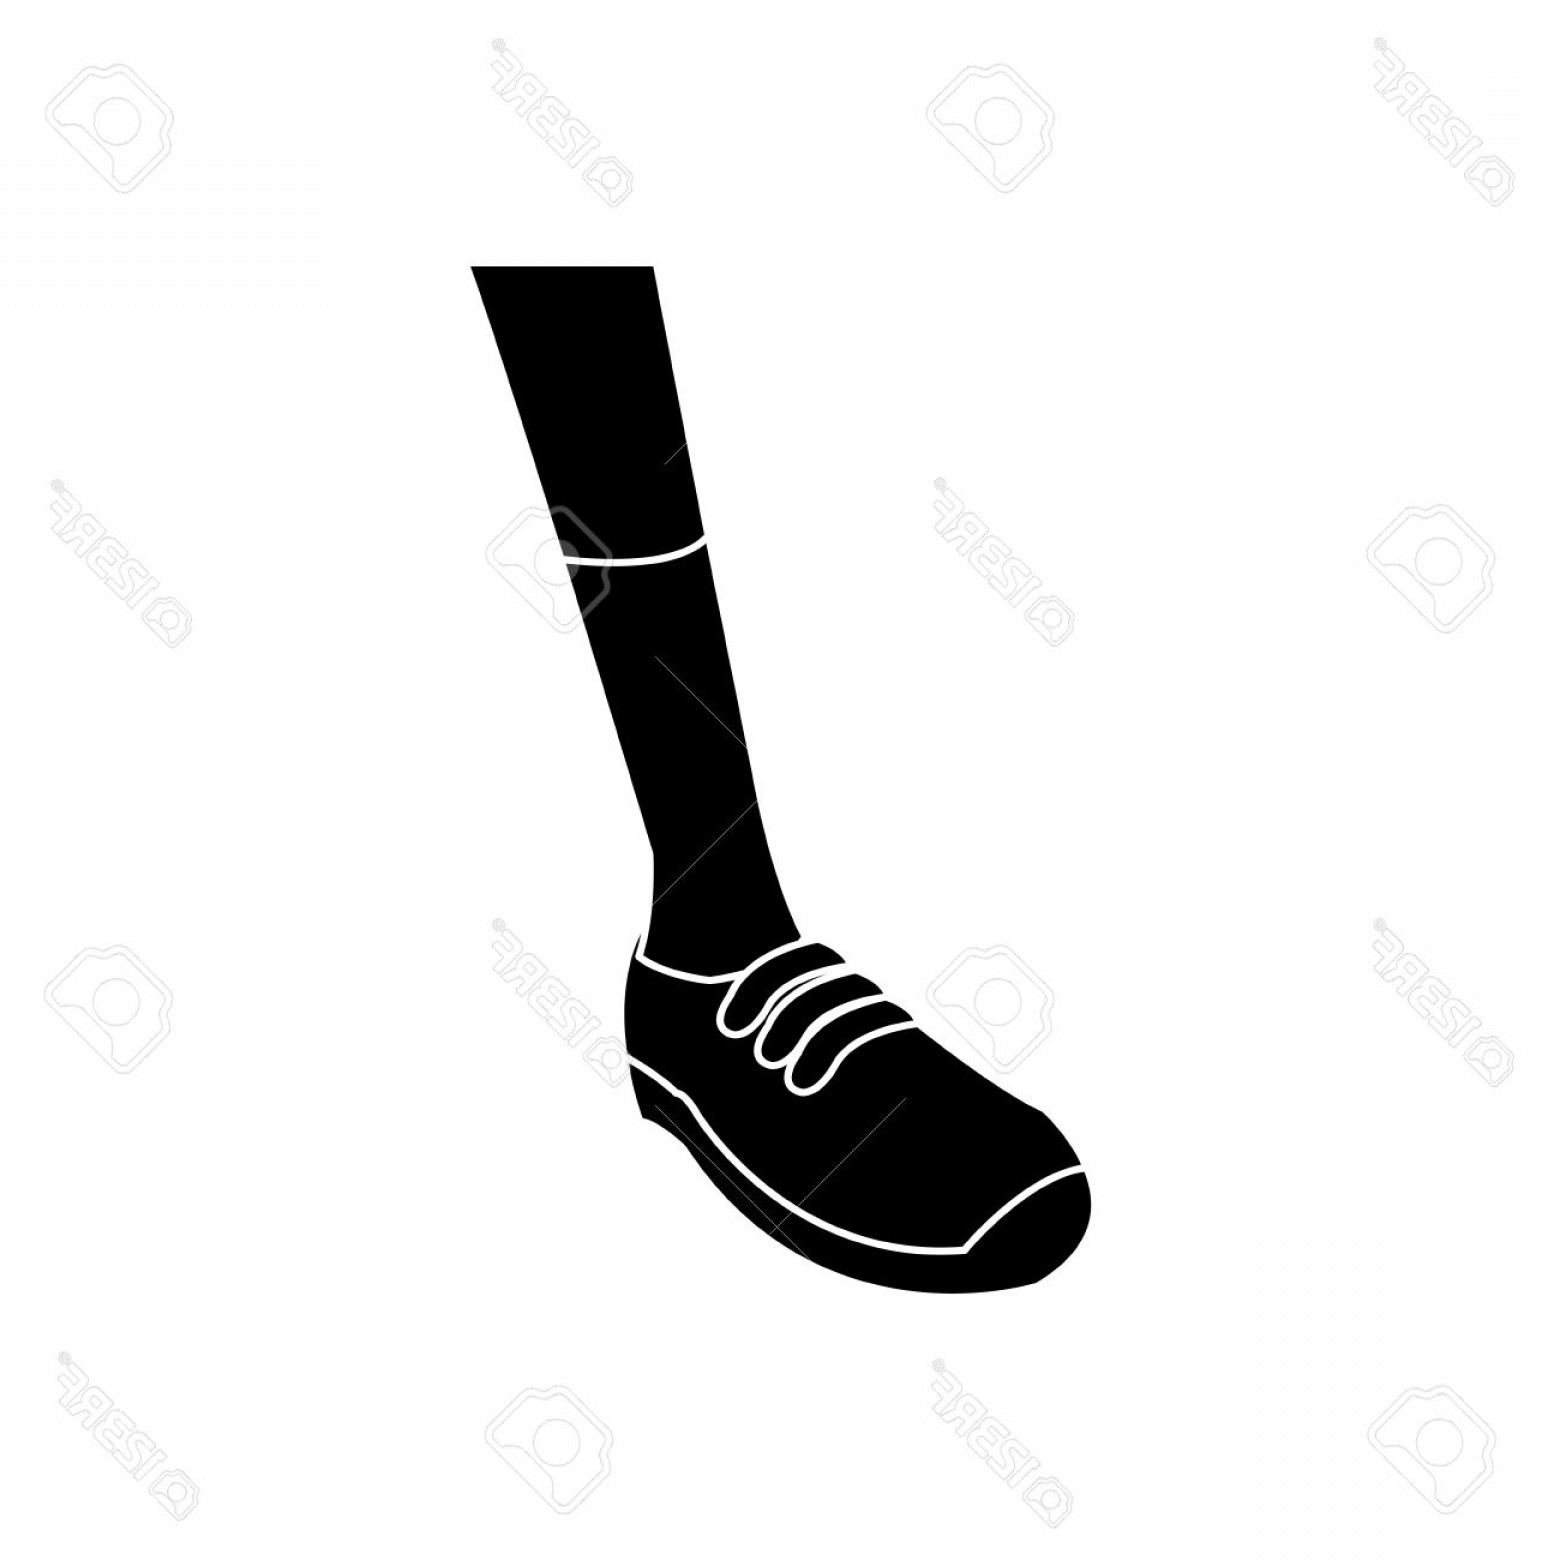 Sneaker Silhouette Vector: Photostock Vector Silhouette Foot Sneaker Sport Concept Vector Illustration